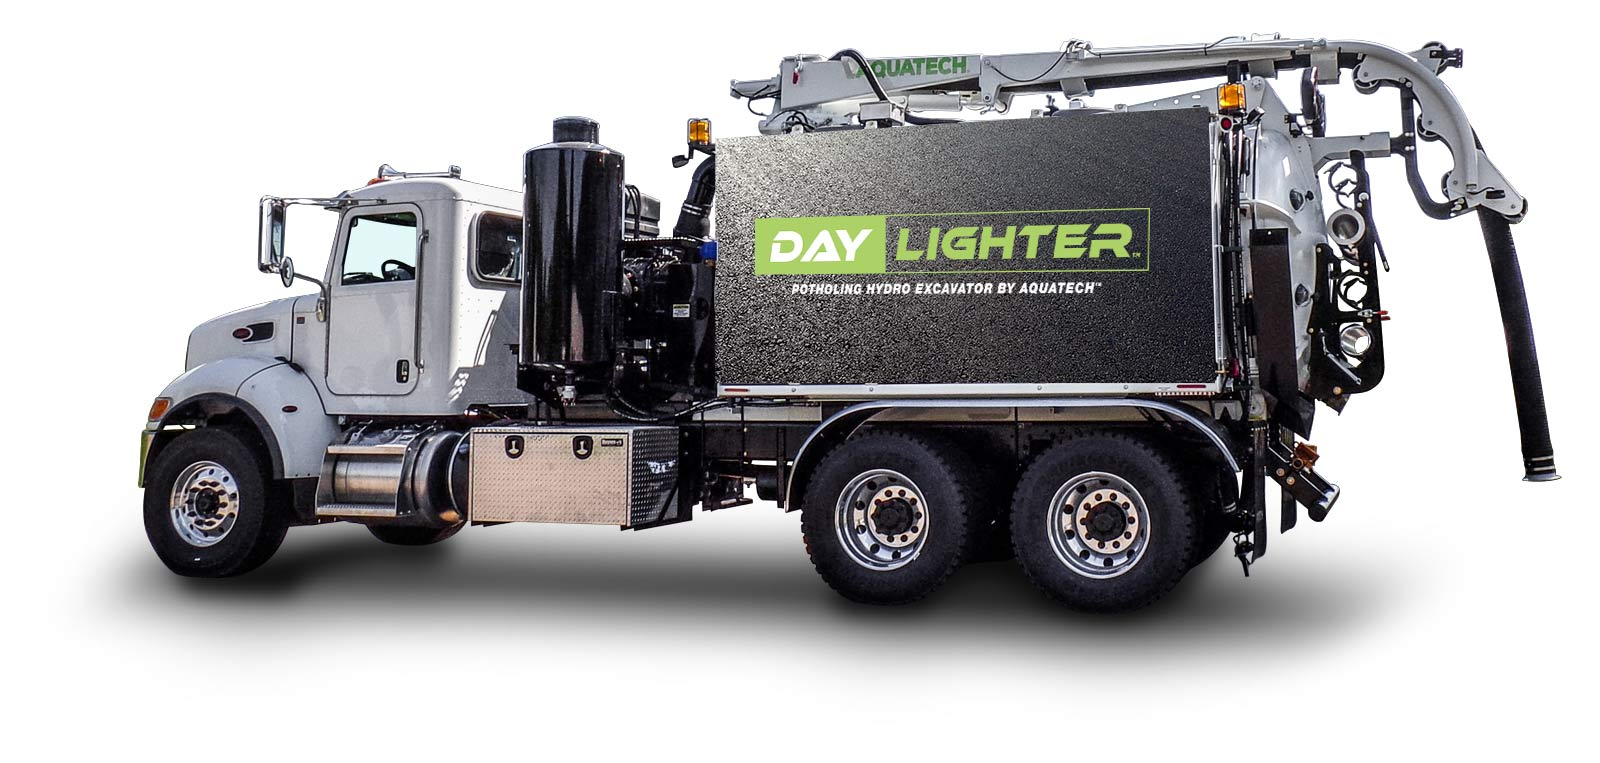 Daylighter Hydro Excavator sewage trucks side profile